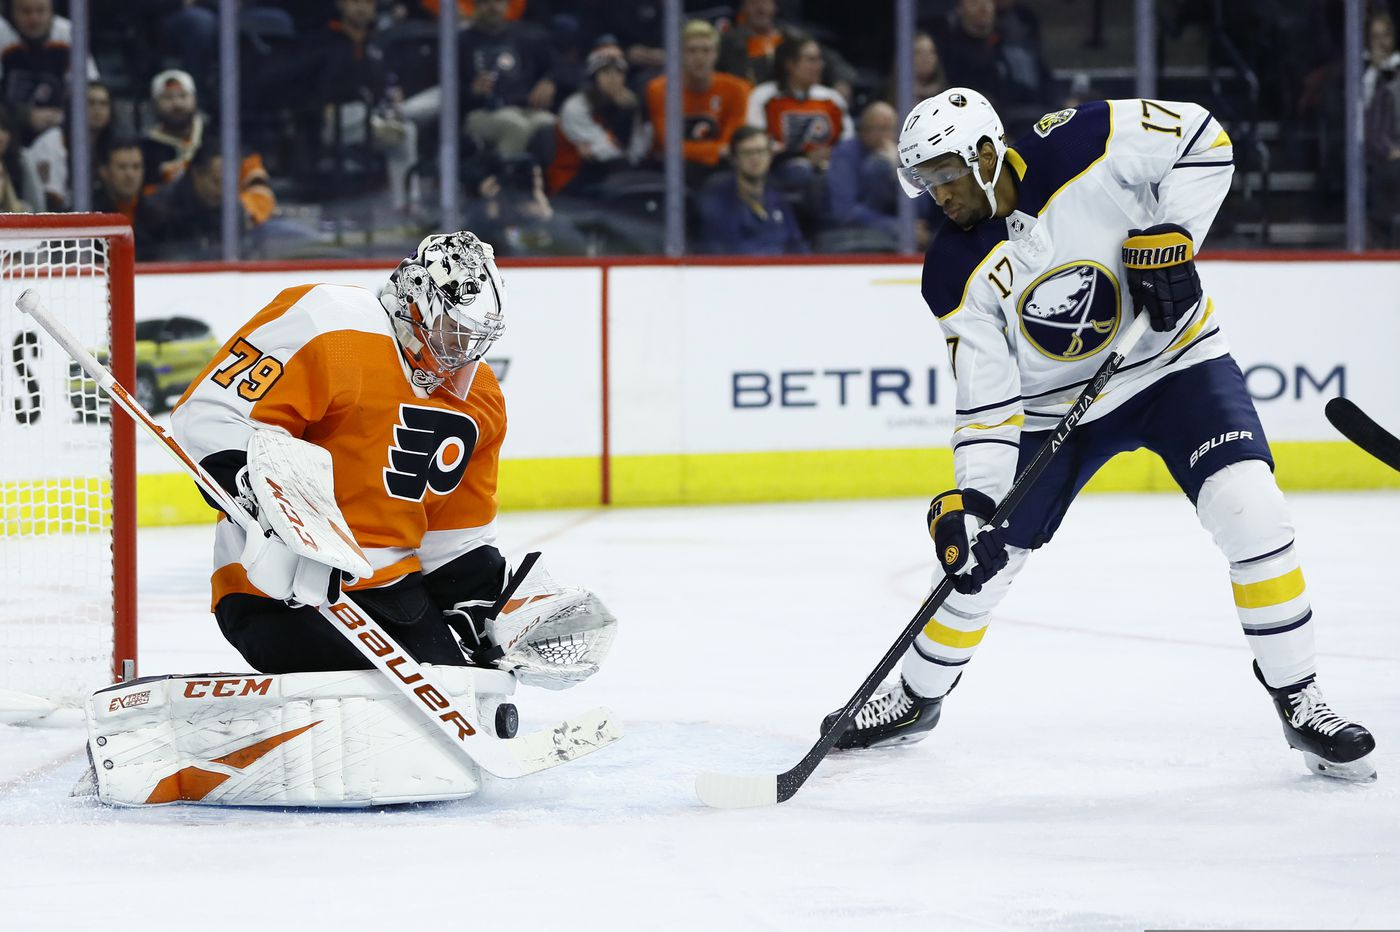 Flyers, mostly silent (so far) in free agency, lose Tyler Pitlick; Wayne Simmonds heads to Toronto, Henrik Lundqvist to Capitals